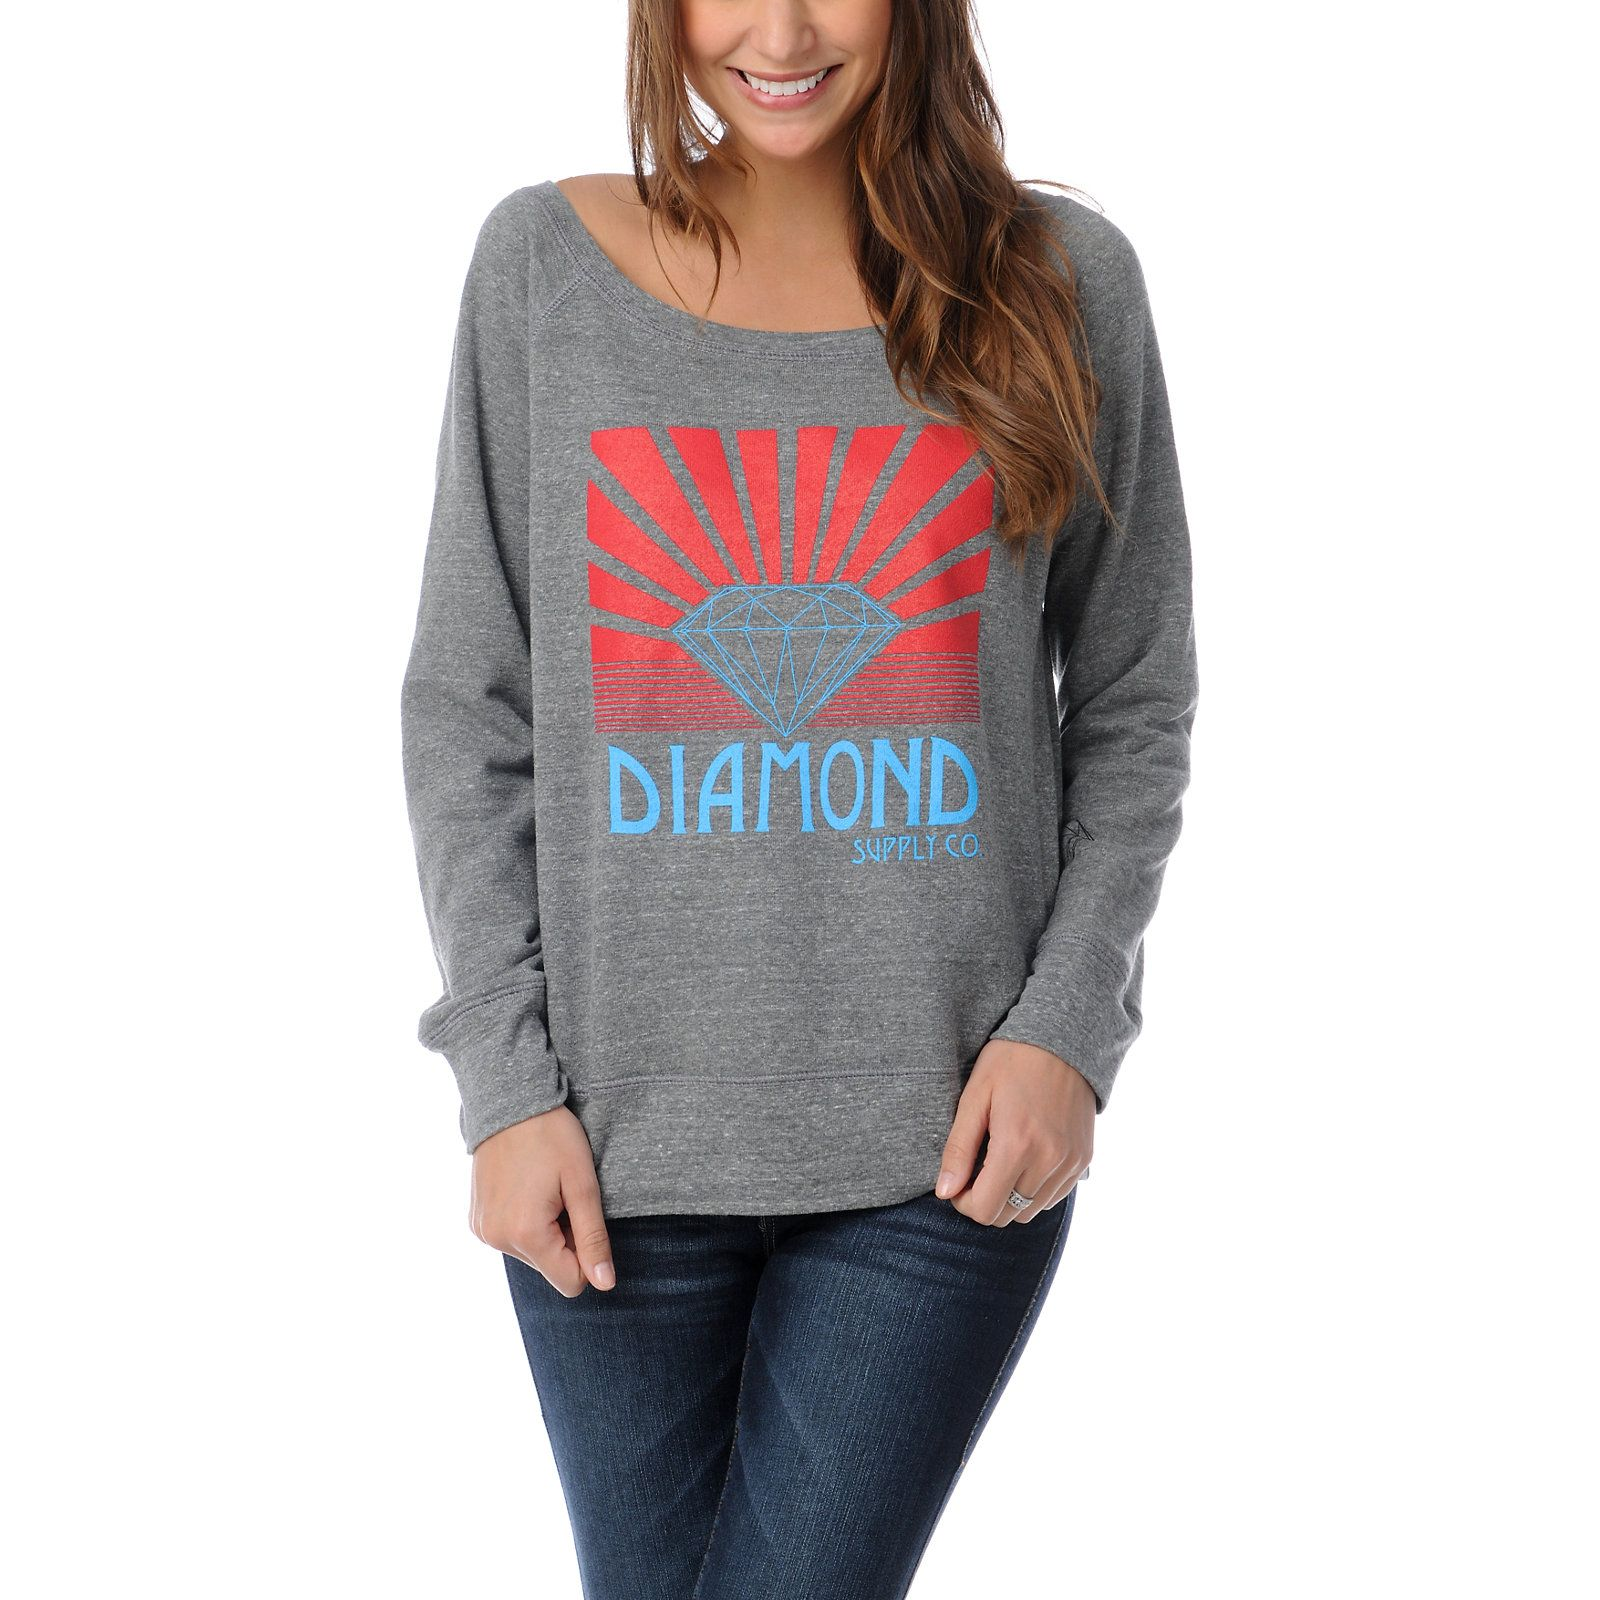 Diamond Supply Shining Girls Heather Grey Crew Neck Sweatshirt at Zumiez : PDP